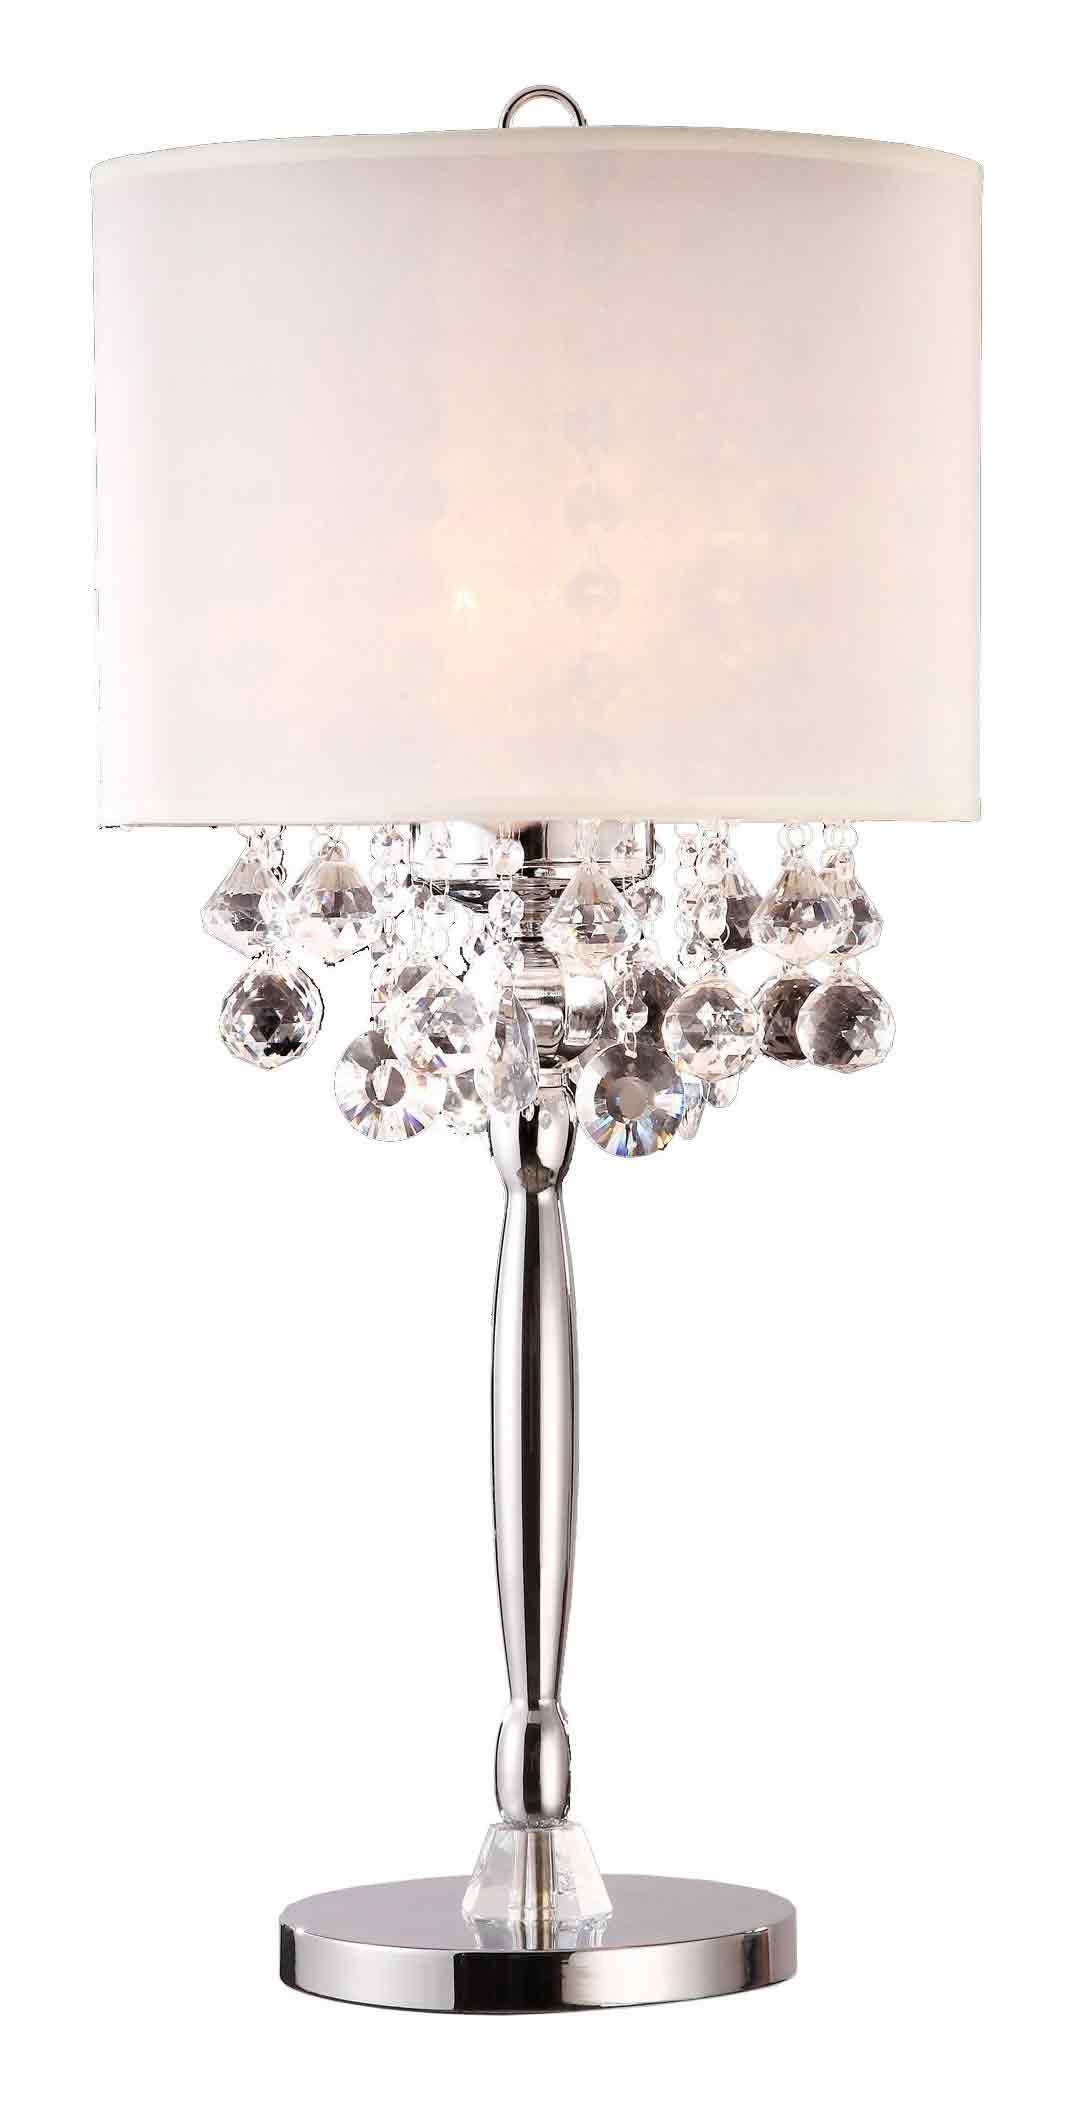 Ore International K-5110T 29.5-Inch Crystal Table Lamp, Silver by ORE (Image #1)